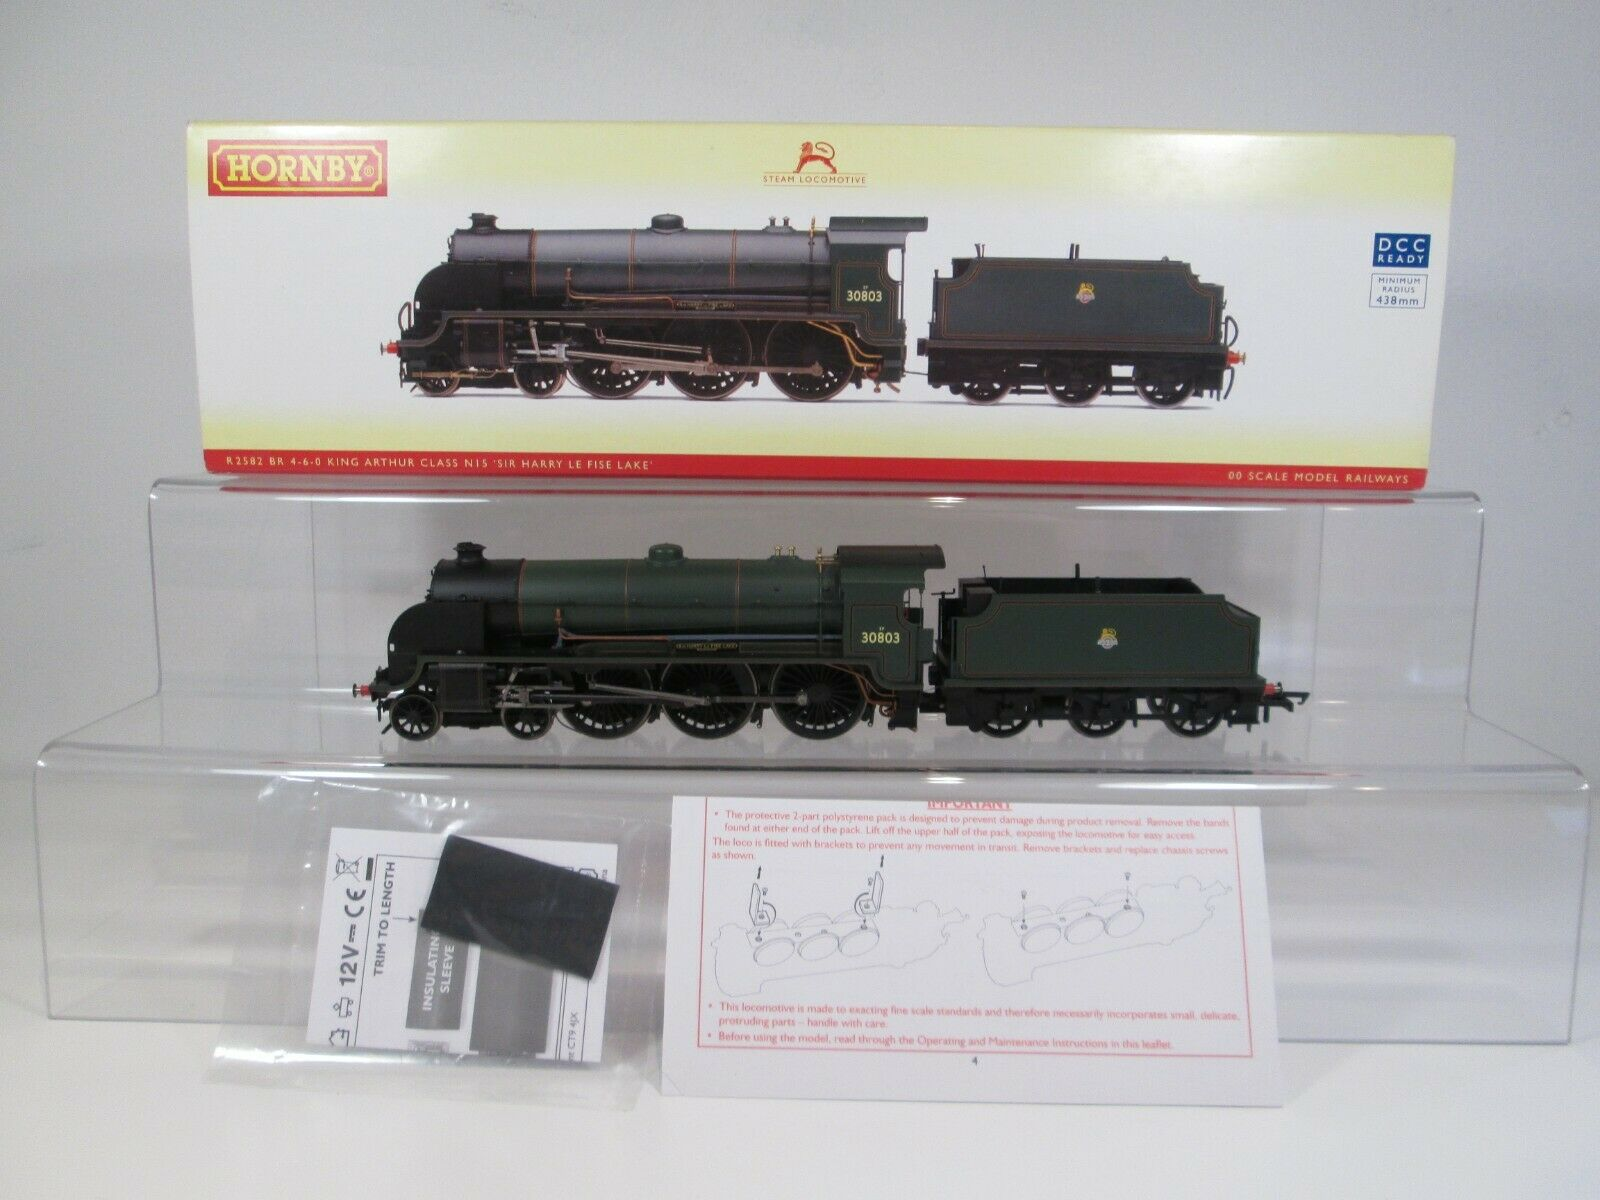 Hornby OO Gauge R2582 Class N15 30803 Sir Harry Le Fise Lake BR Green DCC Ready